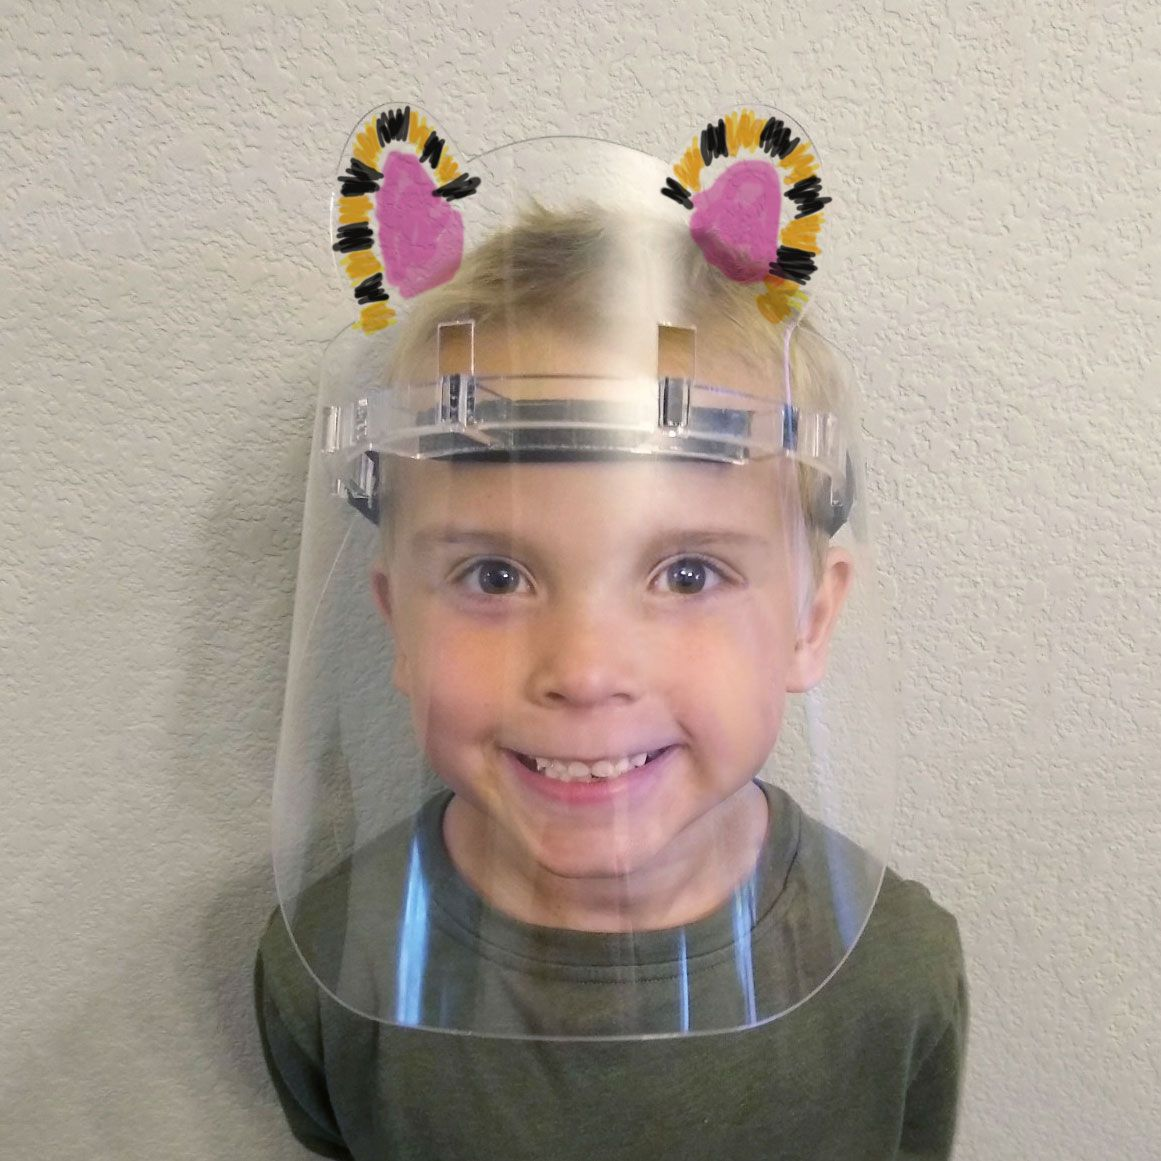 Youth Face Shield Glassical Designs in 2020 Face